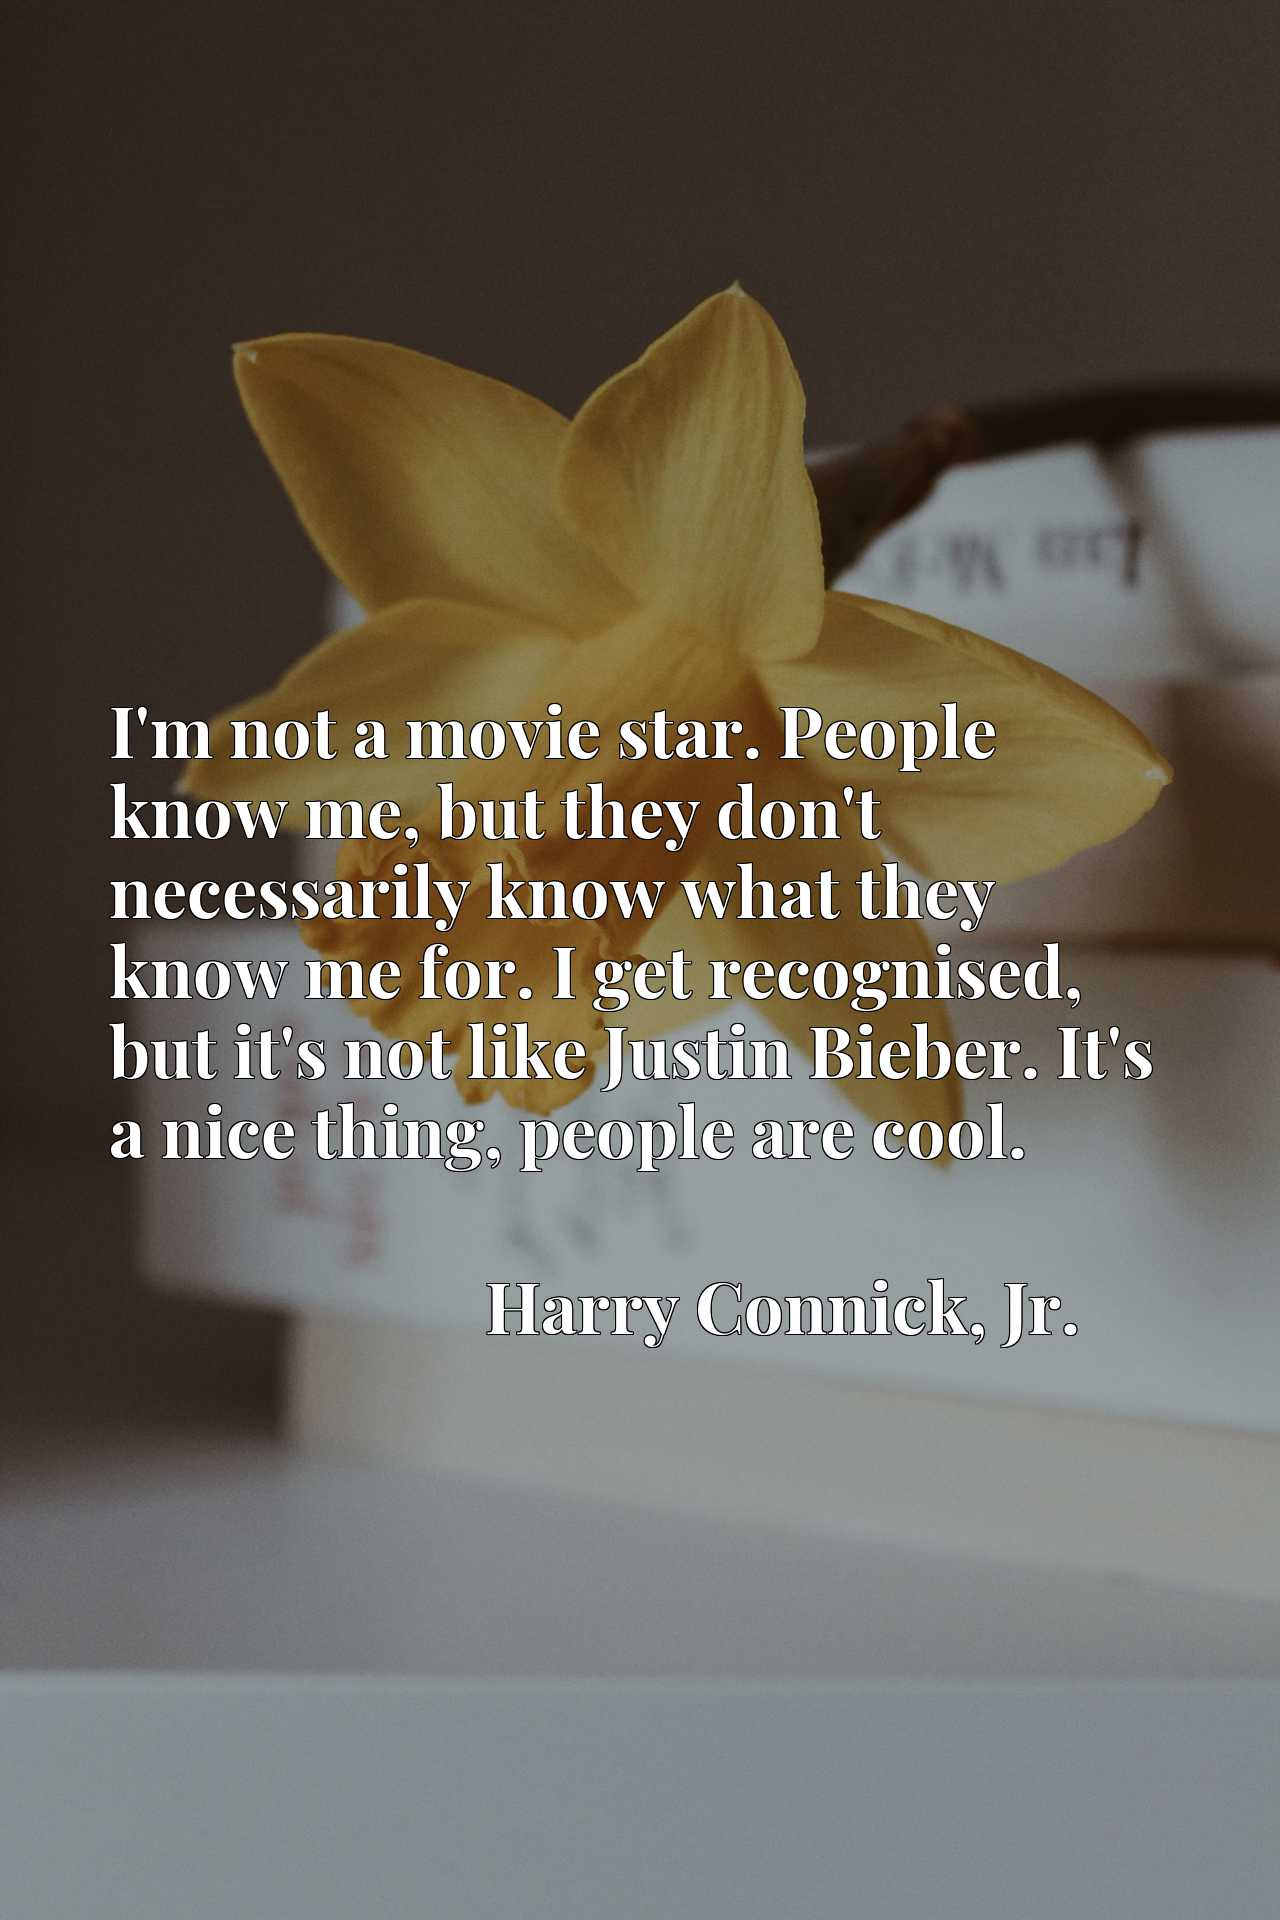 I'm not a movie star. People know me, but they don't necessarily know what they know me for. I get recognised, but it's not like Justin Bieber. It's a nice thing, people are cool.